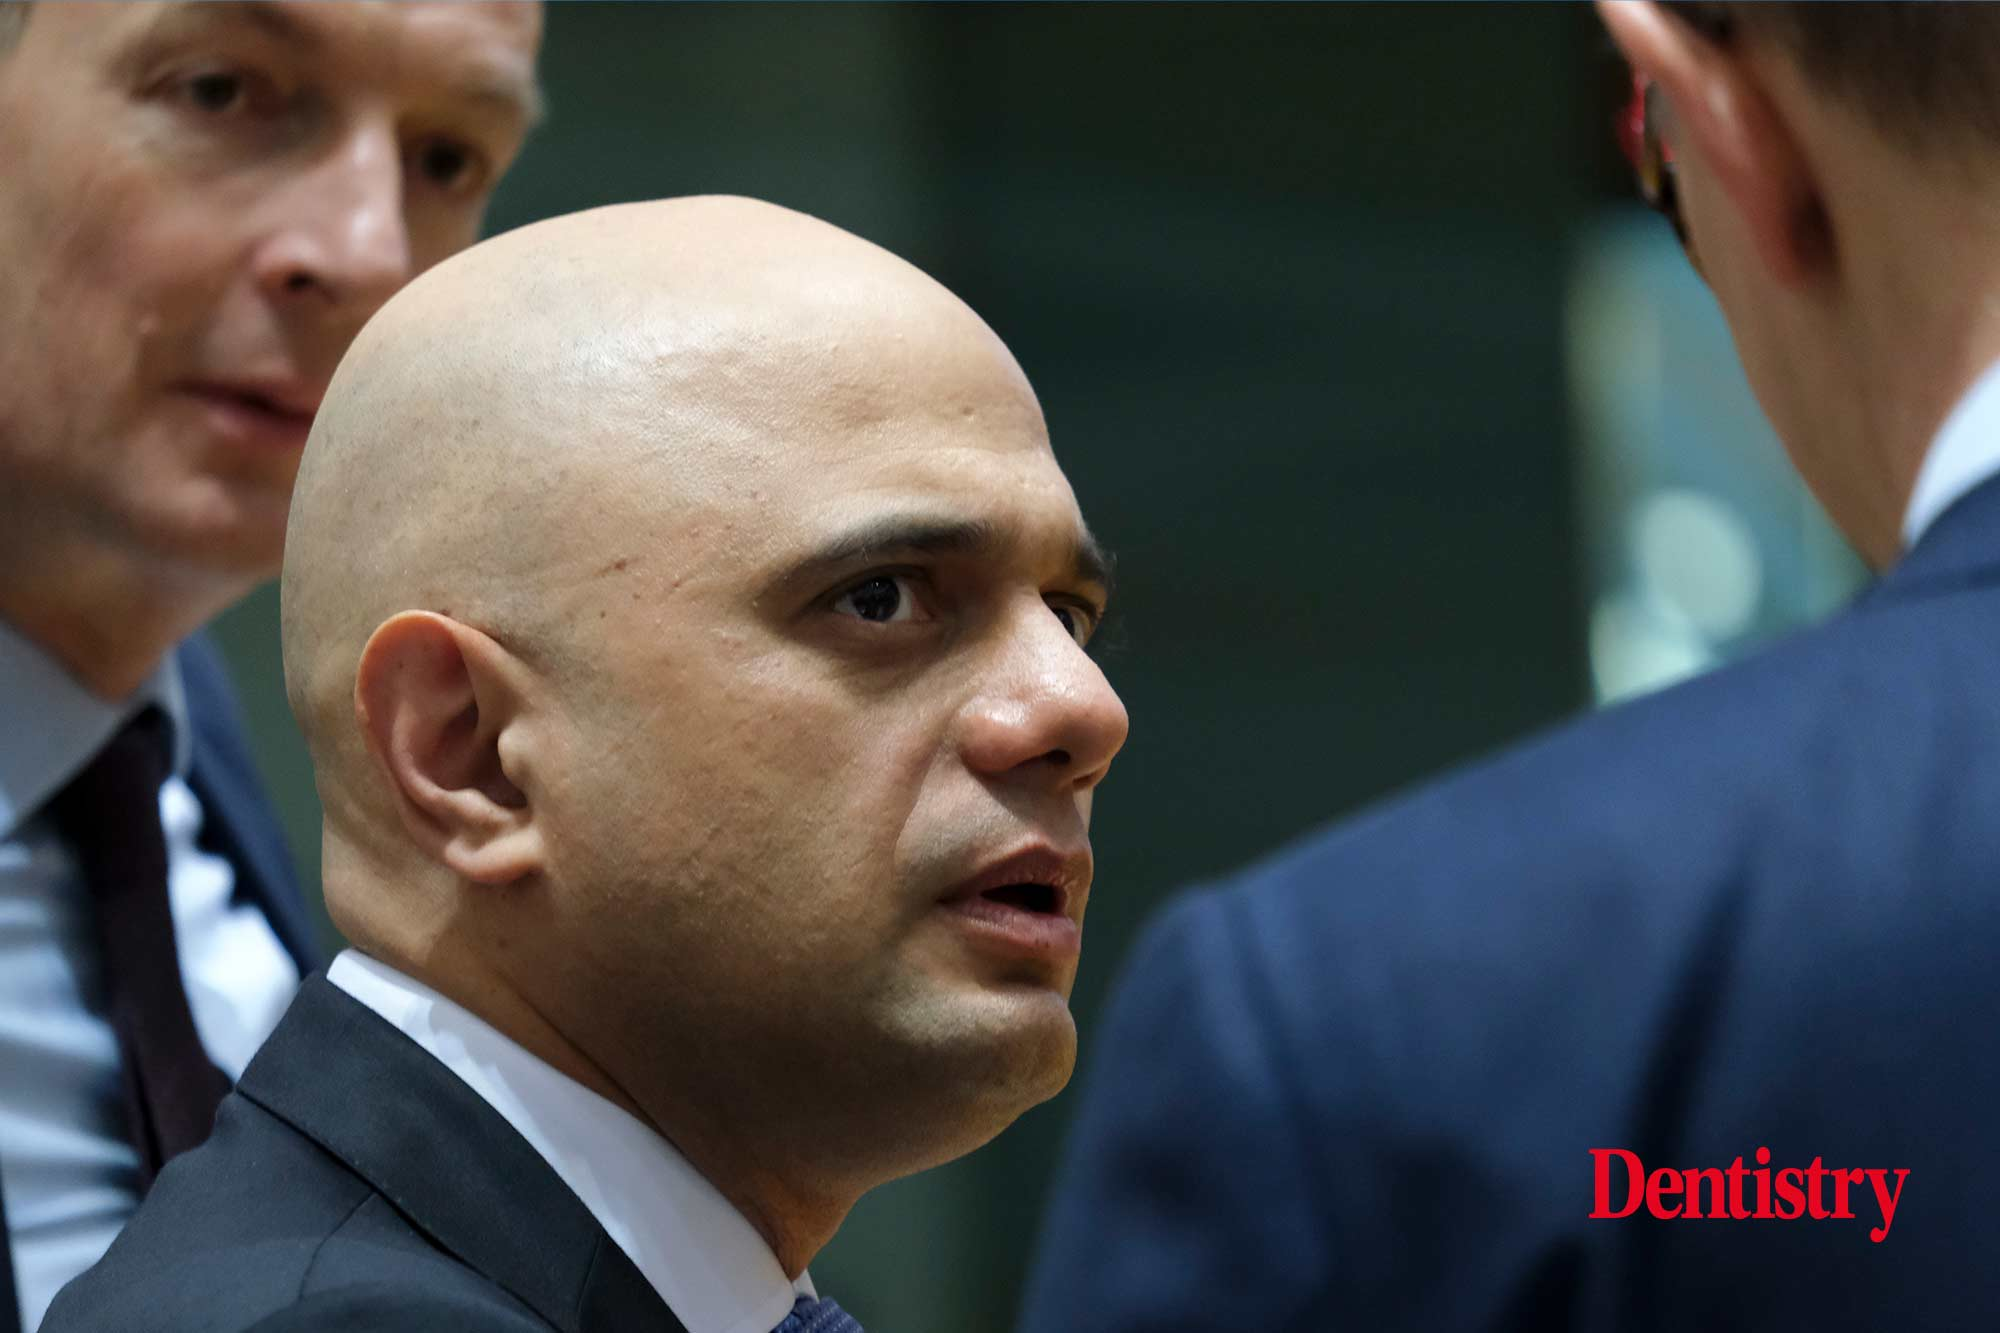 Conservative Party Conference – Health Secretary sidesteps NHS dentistry